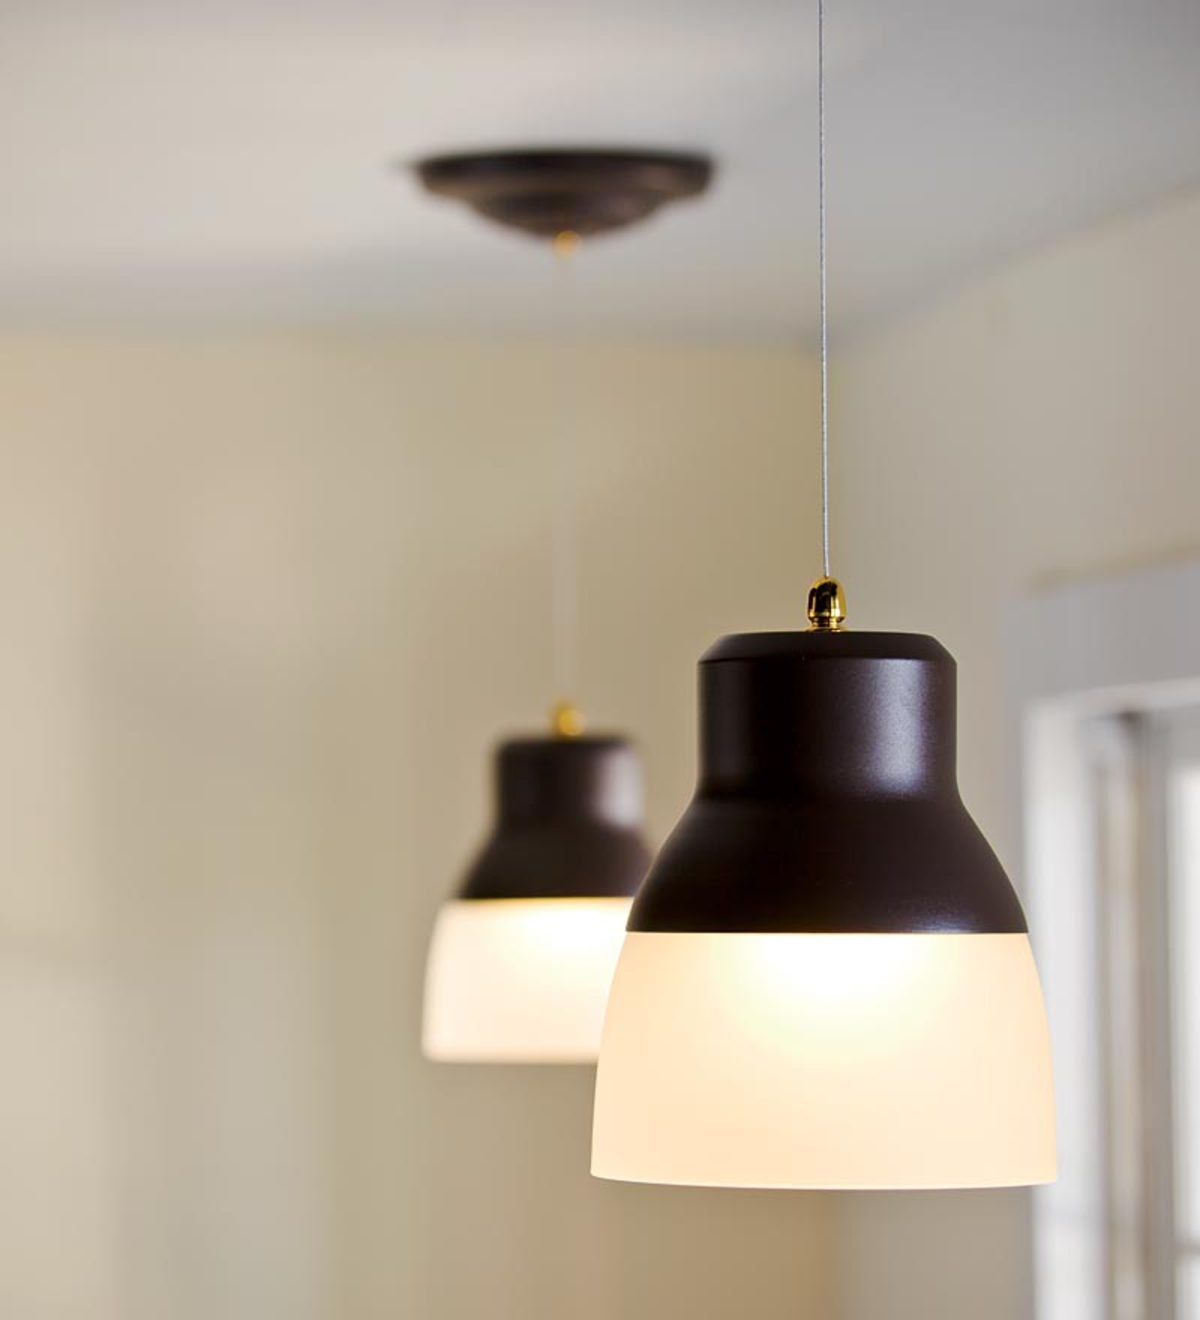 remote controlled battery operated ez adjustable pendant light plowhearth. Black Bedroom Furniture Sets. Home Design Ideas